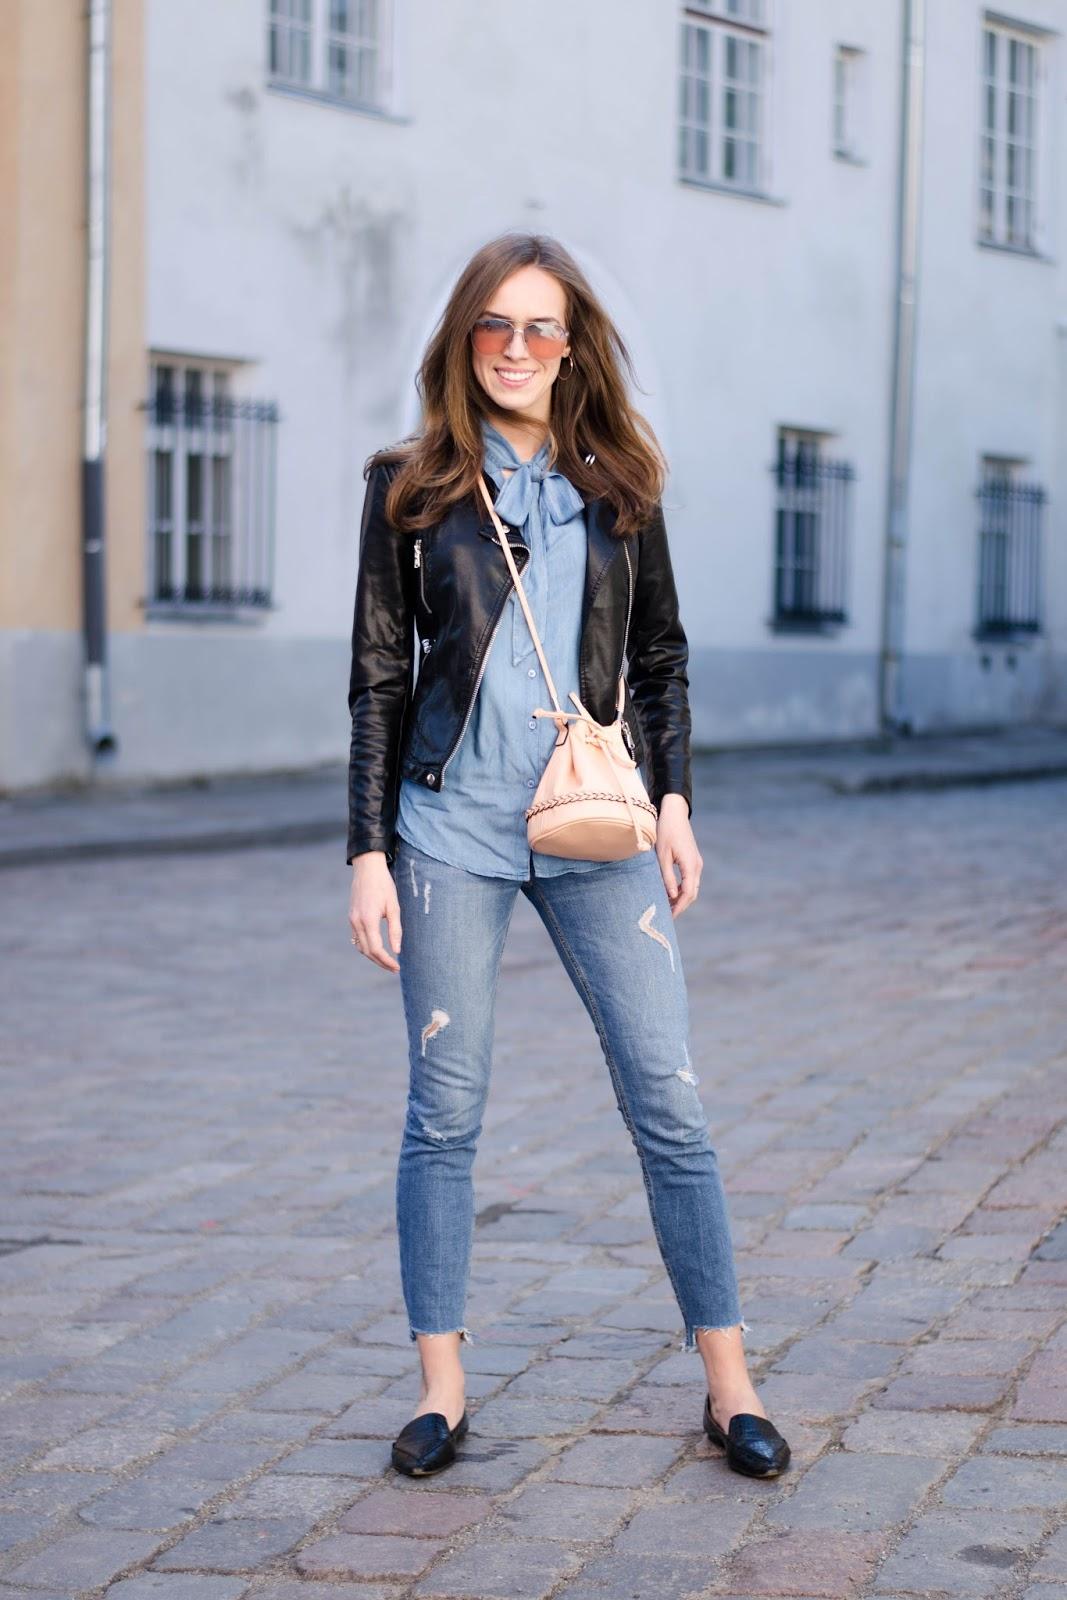 kristjaana mere spring outfit denim shirt ripped jeans